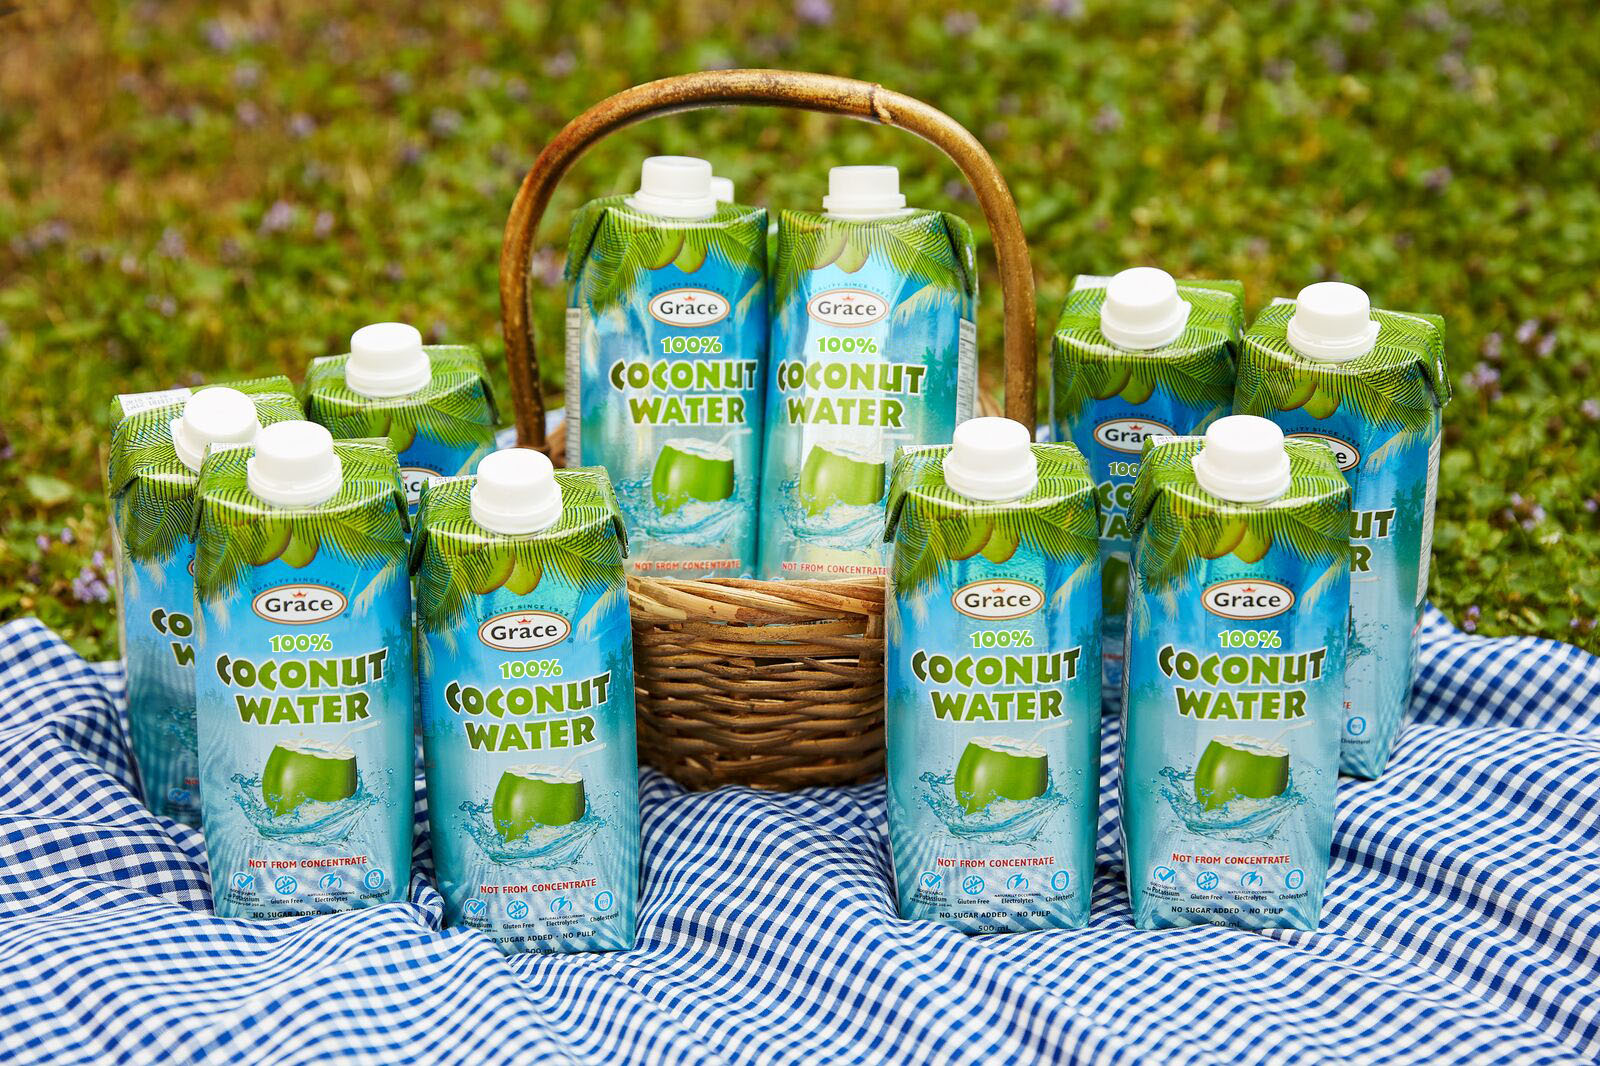 a basket of coconut water tetra packs